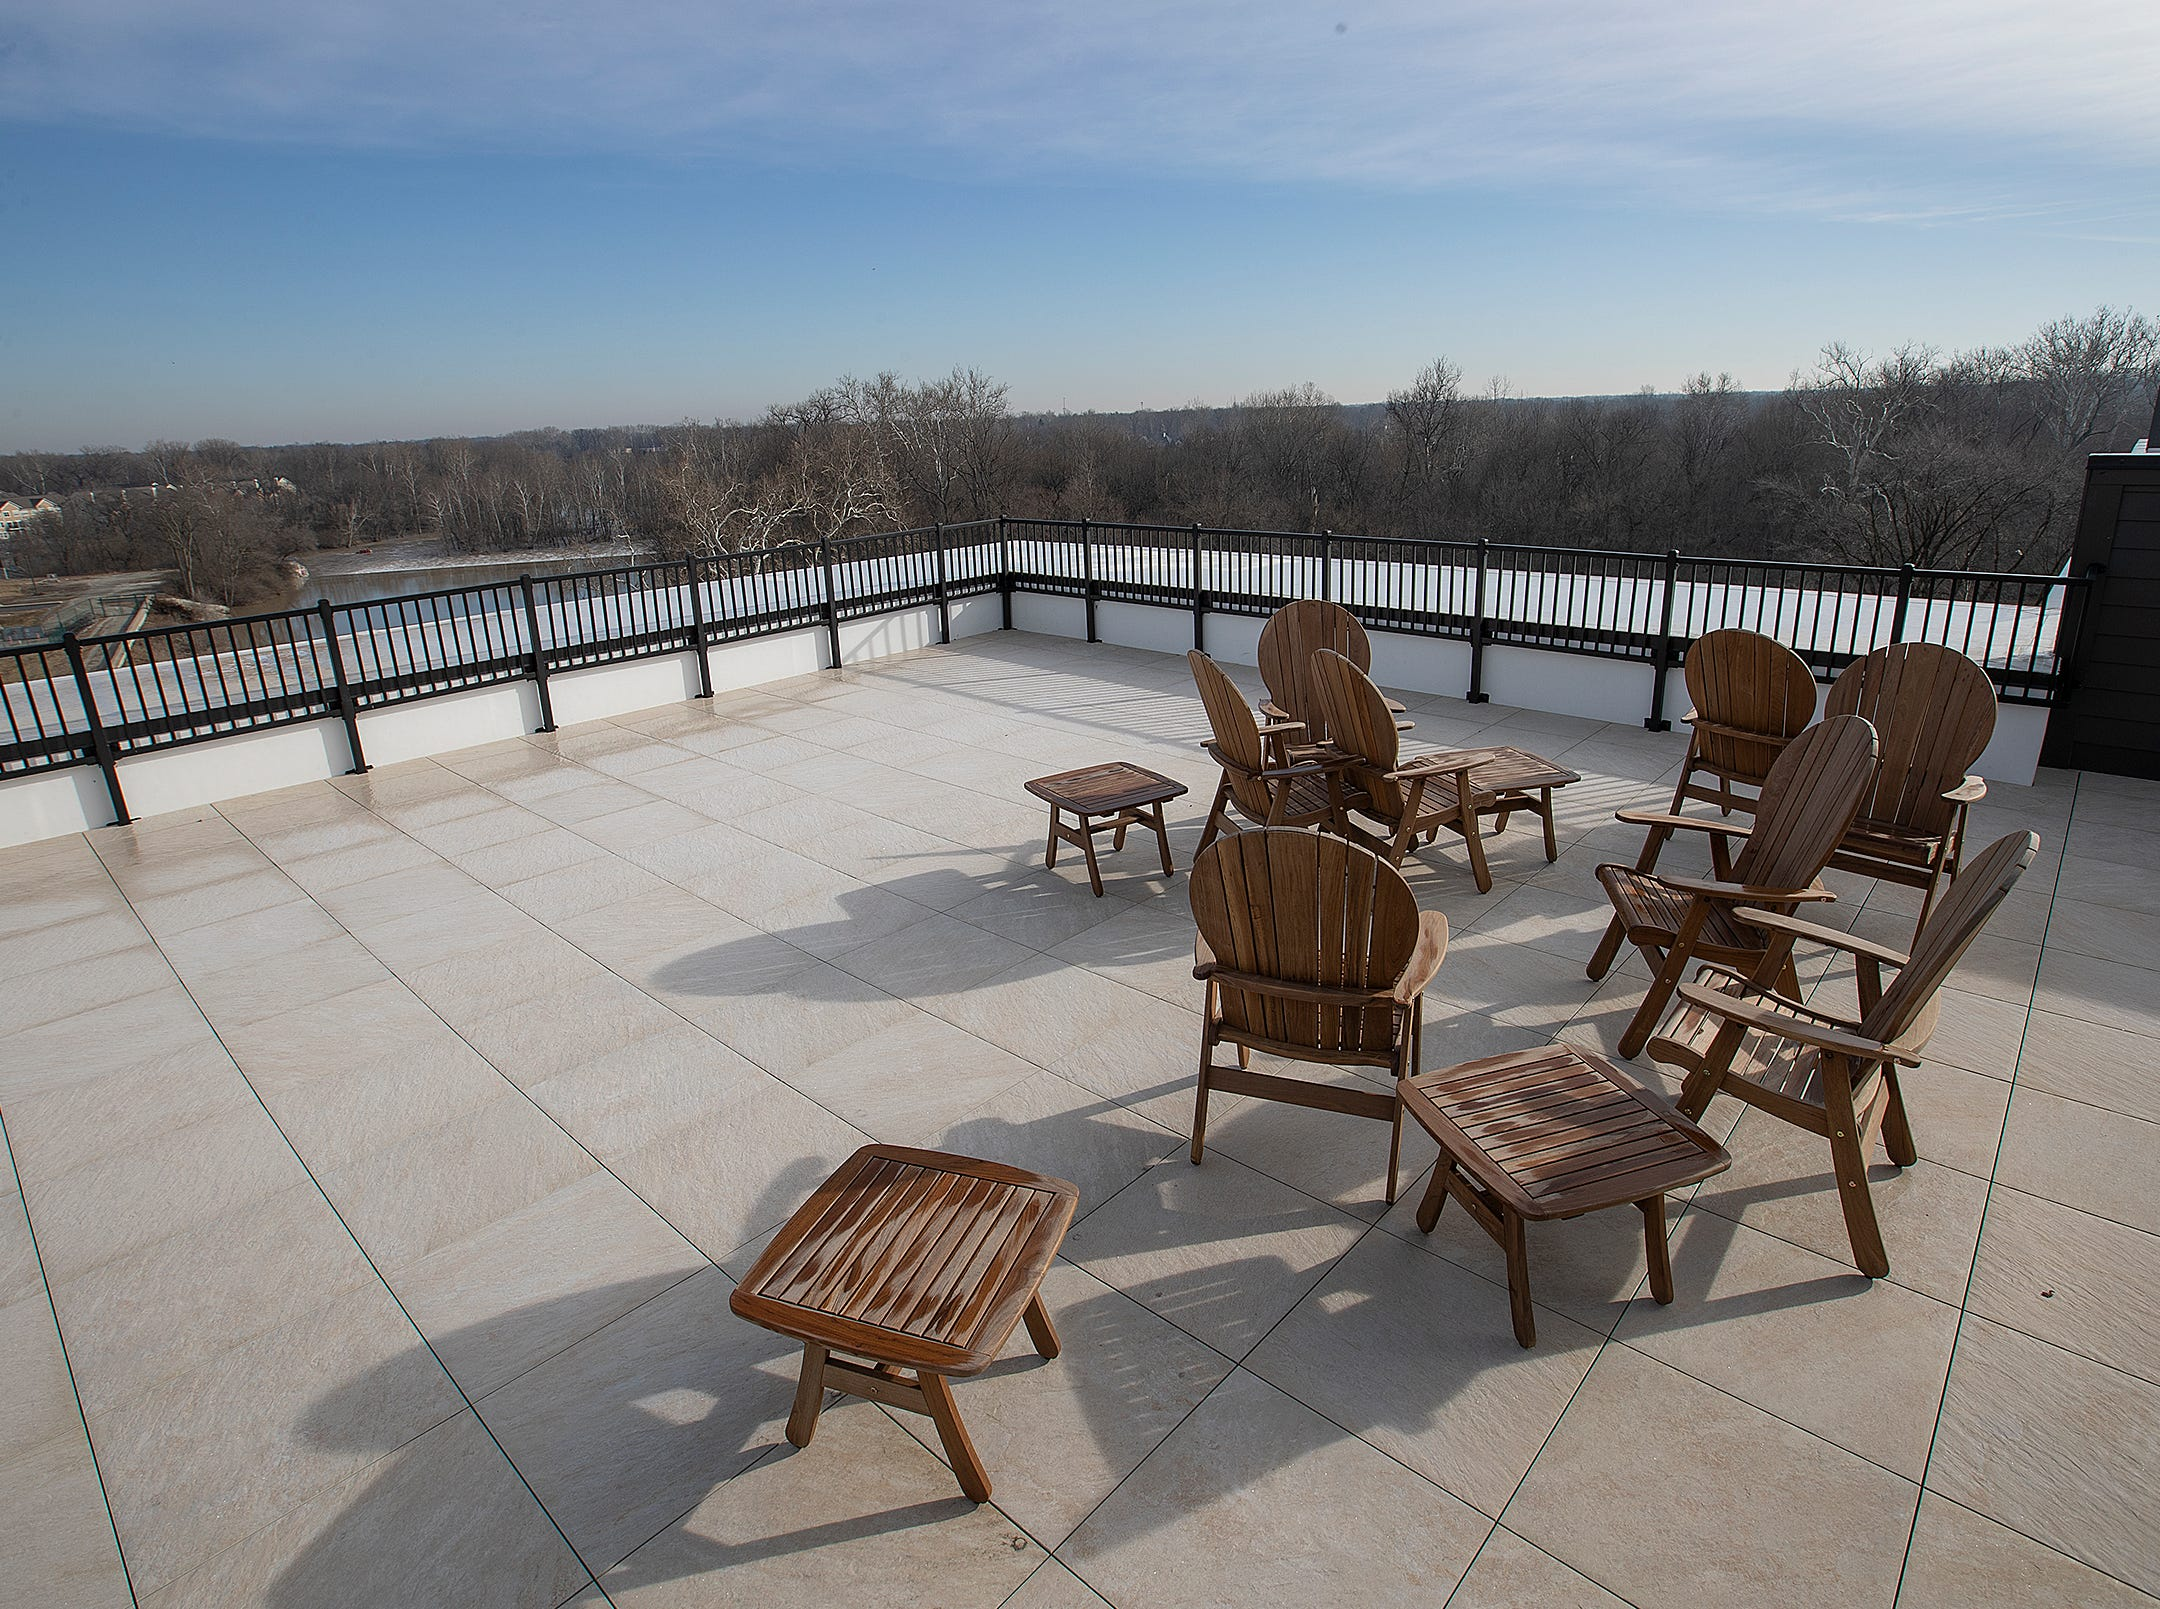 This is the rooftop patio area for residents of the River House. The River House features studio, 1 and 2 bedroom new apartment homes in Broad Ripple on Tueday, March 12, 2019. Located in the heart of Broad Ripple right on the Monon Trail and White River.